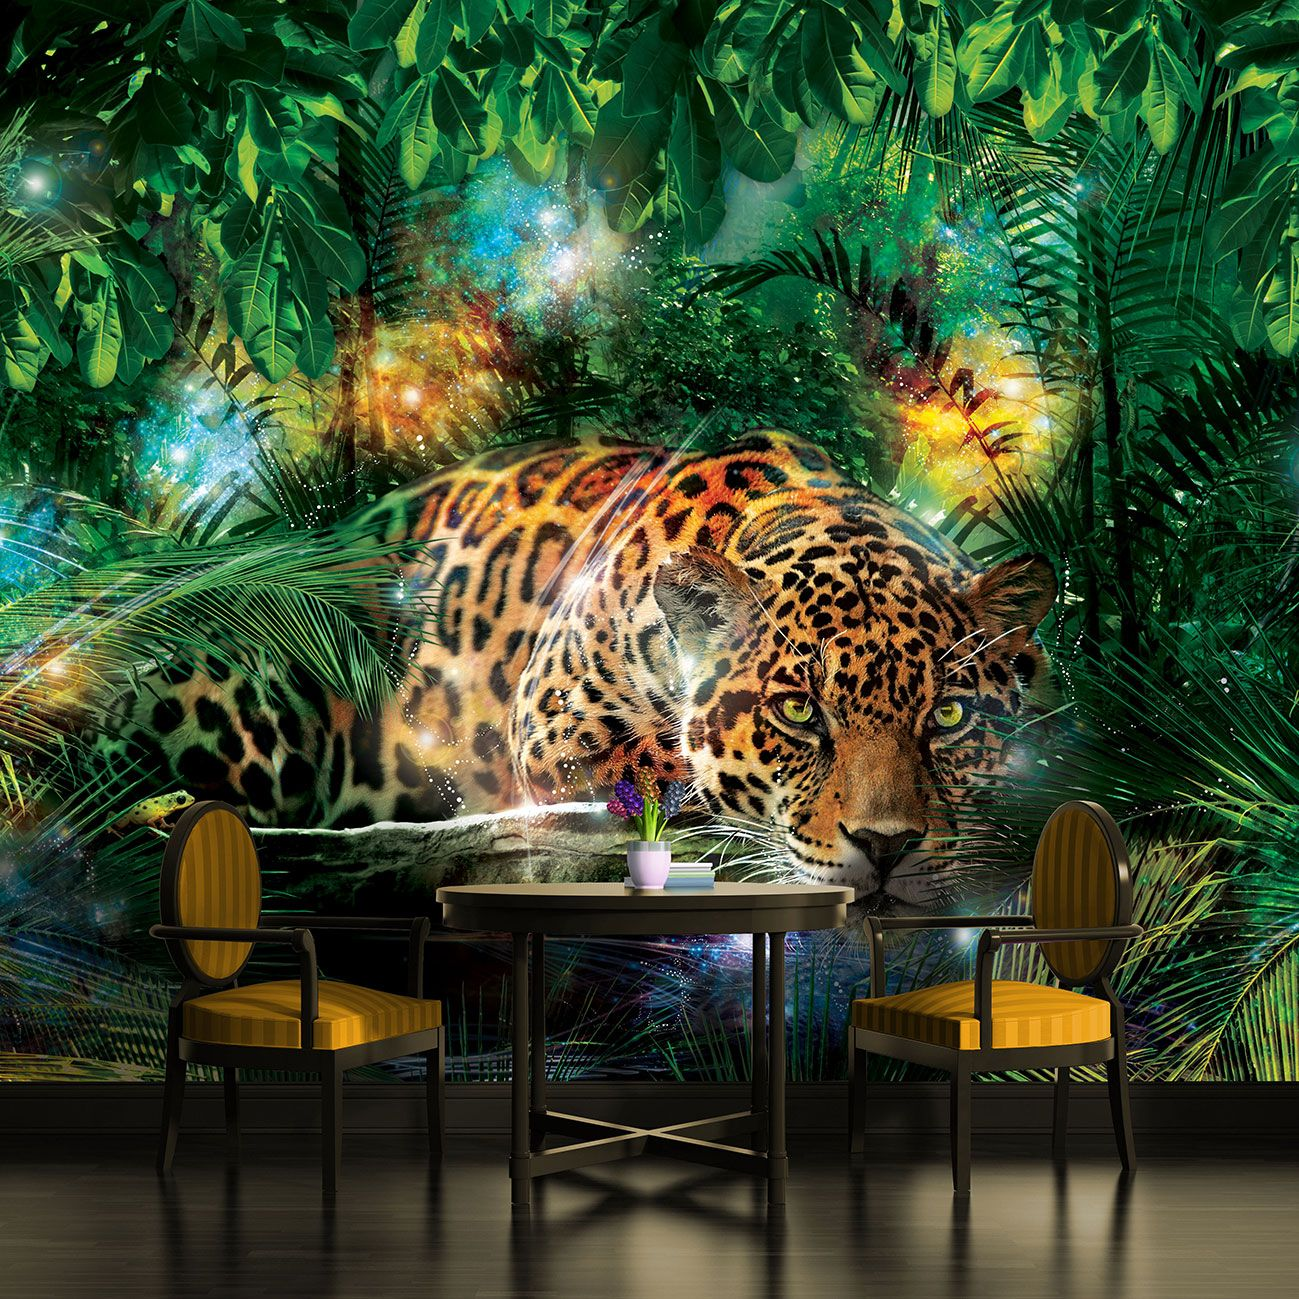 Walltastic Disney Cars Wallpaper Mural Tiger King Of The Jungle Wallpaper Mural For Bedrooms